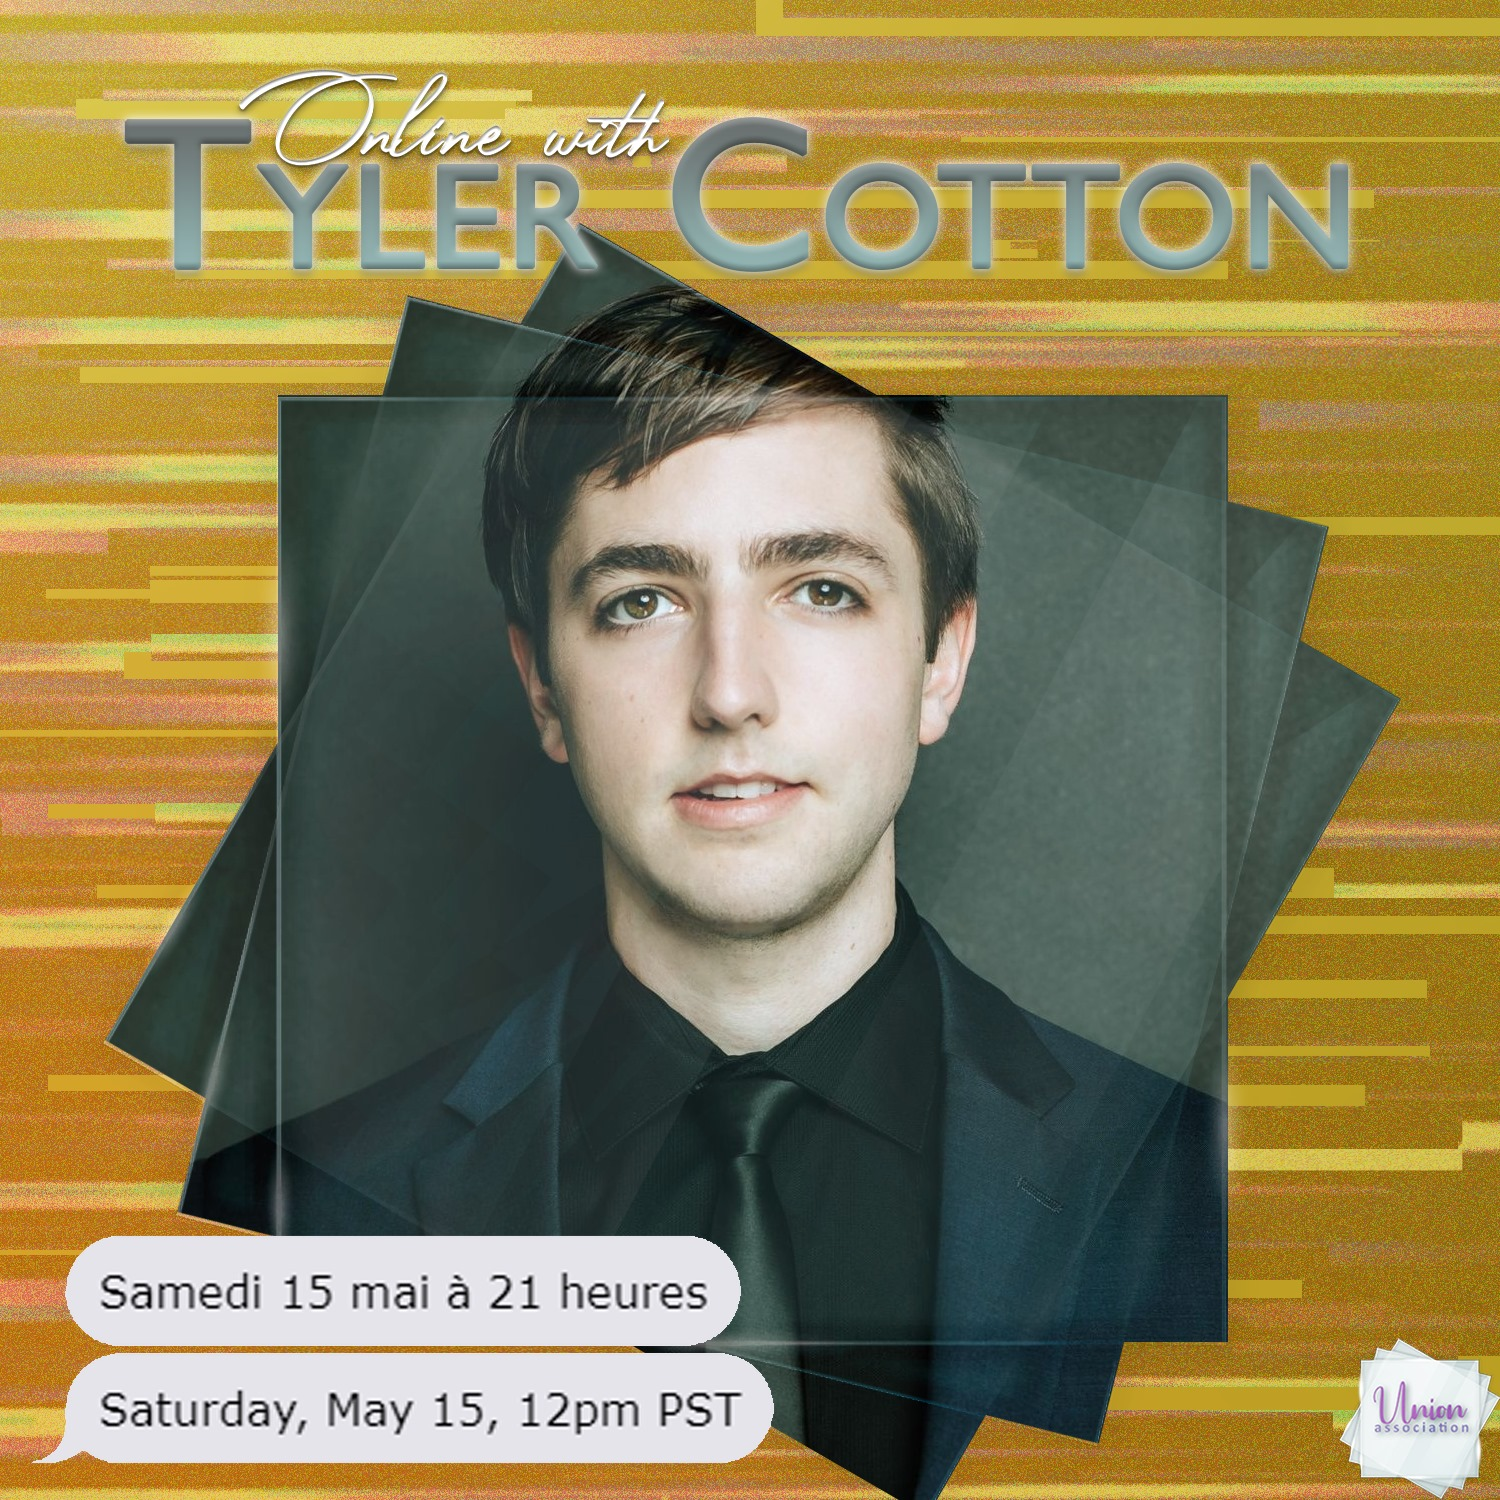 Online with Tyler Cotton